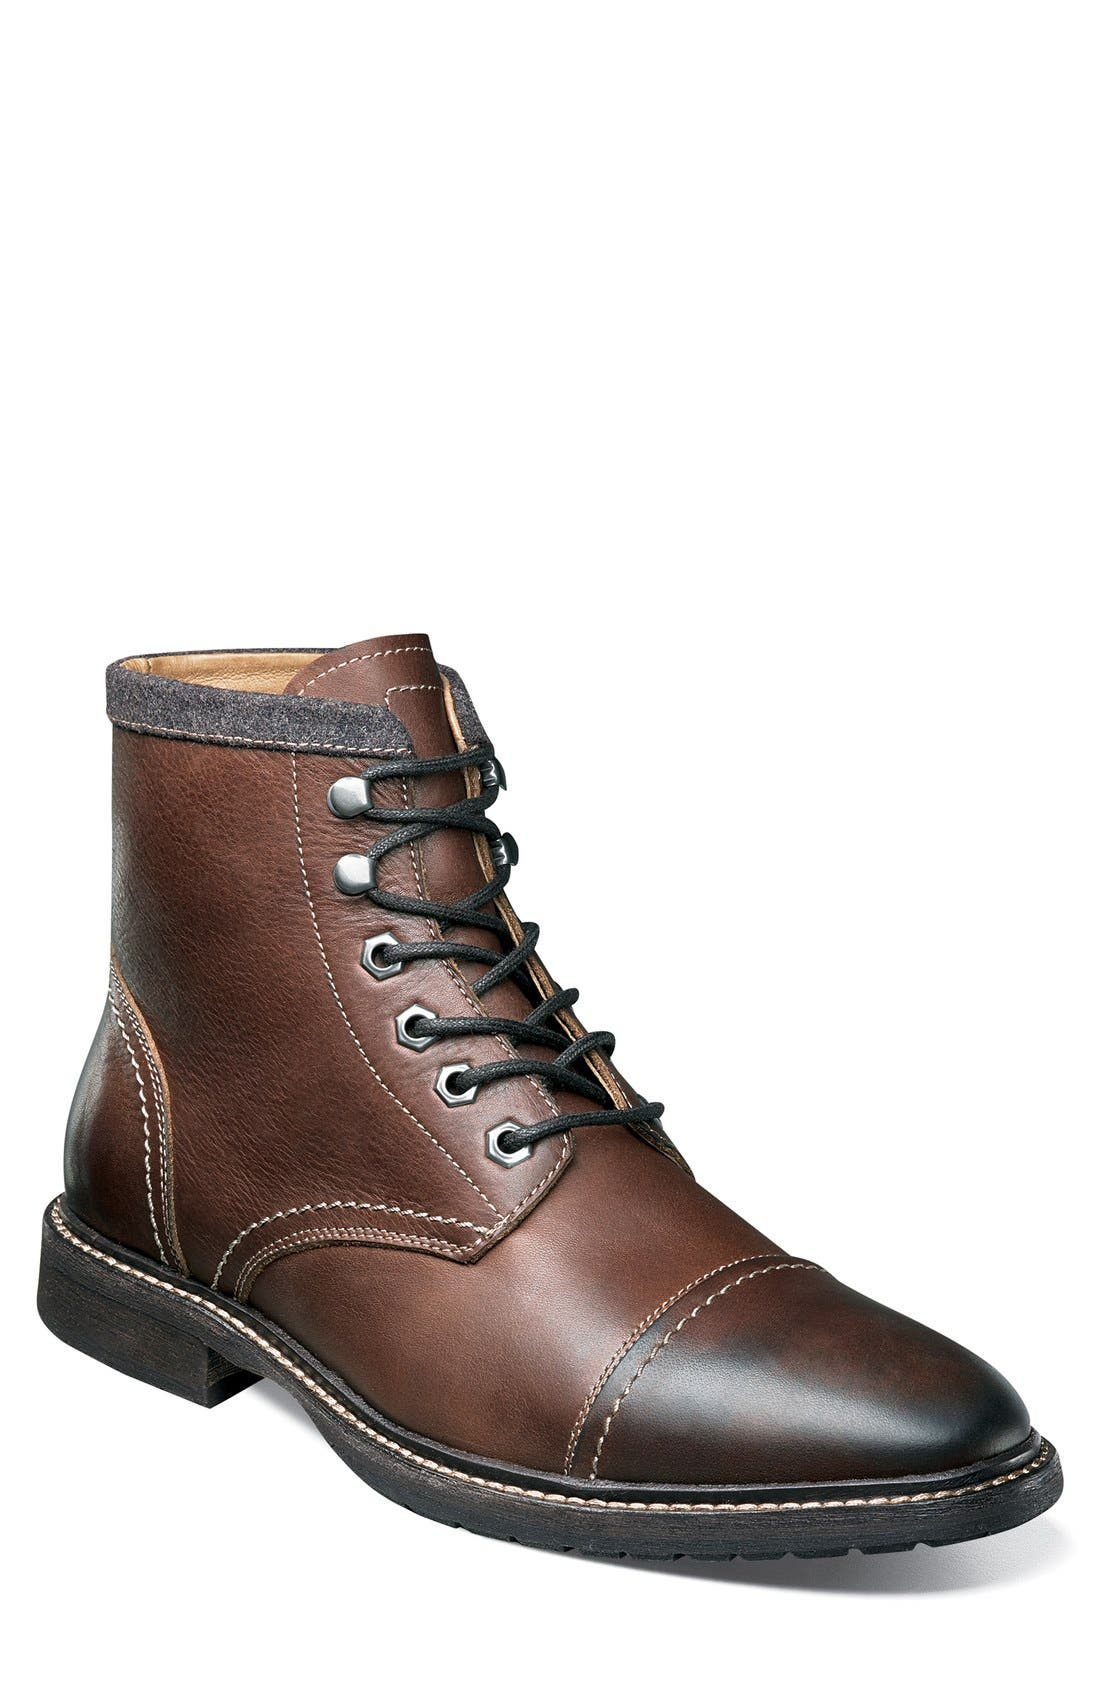 'Indie' Cap Toe Boot,                             Main thumbnail 1, color,                             Chestnut Leather